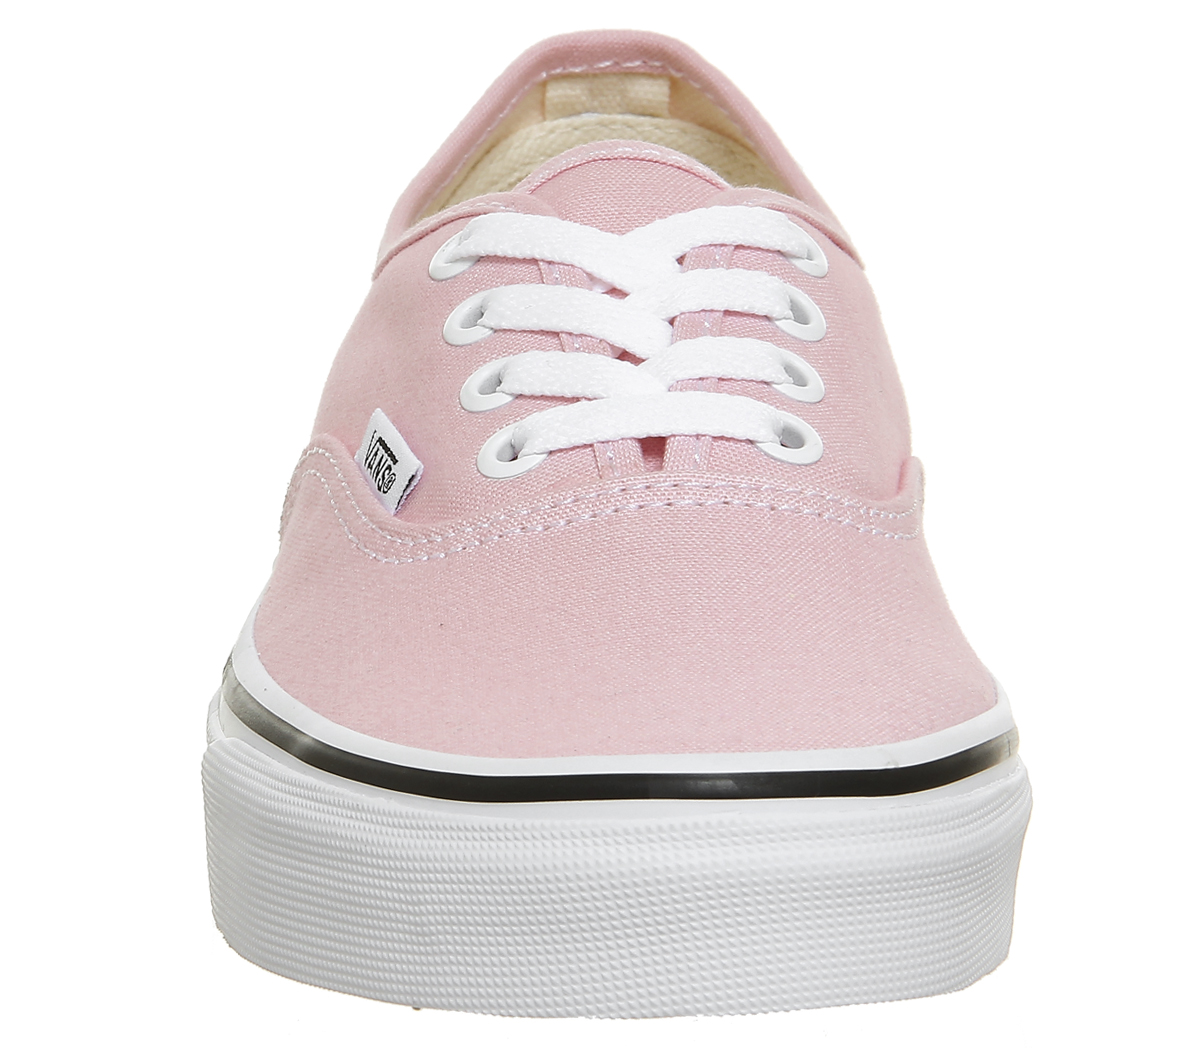 271fa72faf Sentinel Womens Vans Authentic Trainers CHALK PINK TRUE WHITE Trainers Shoes